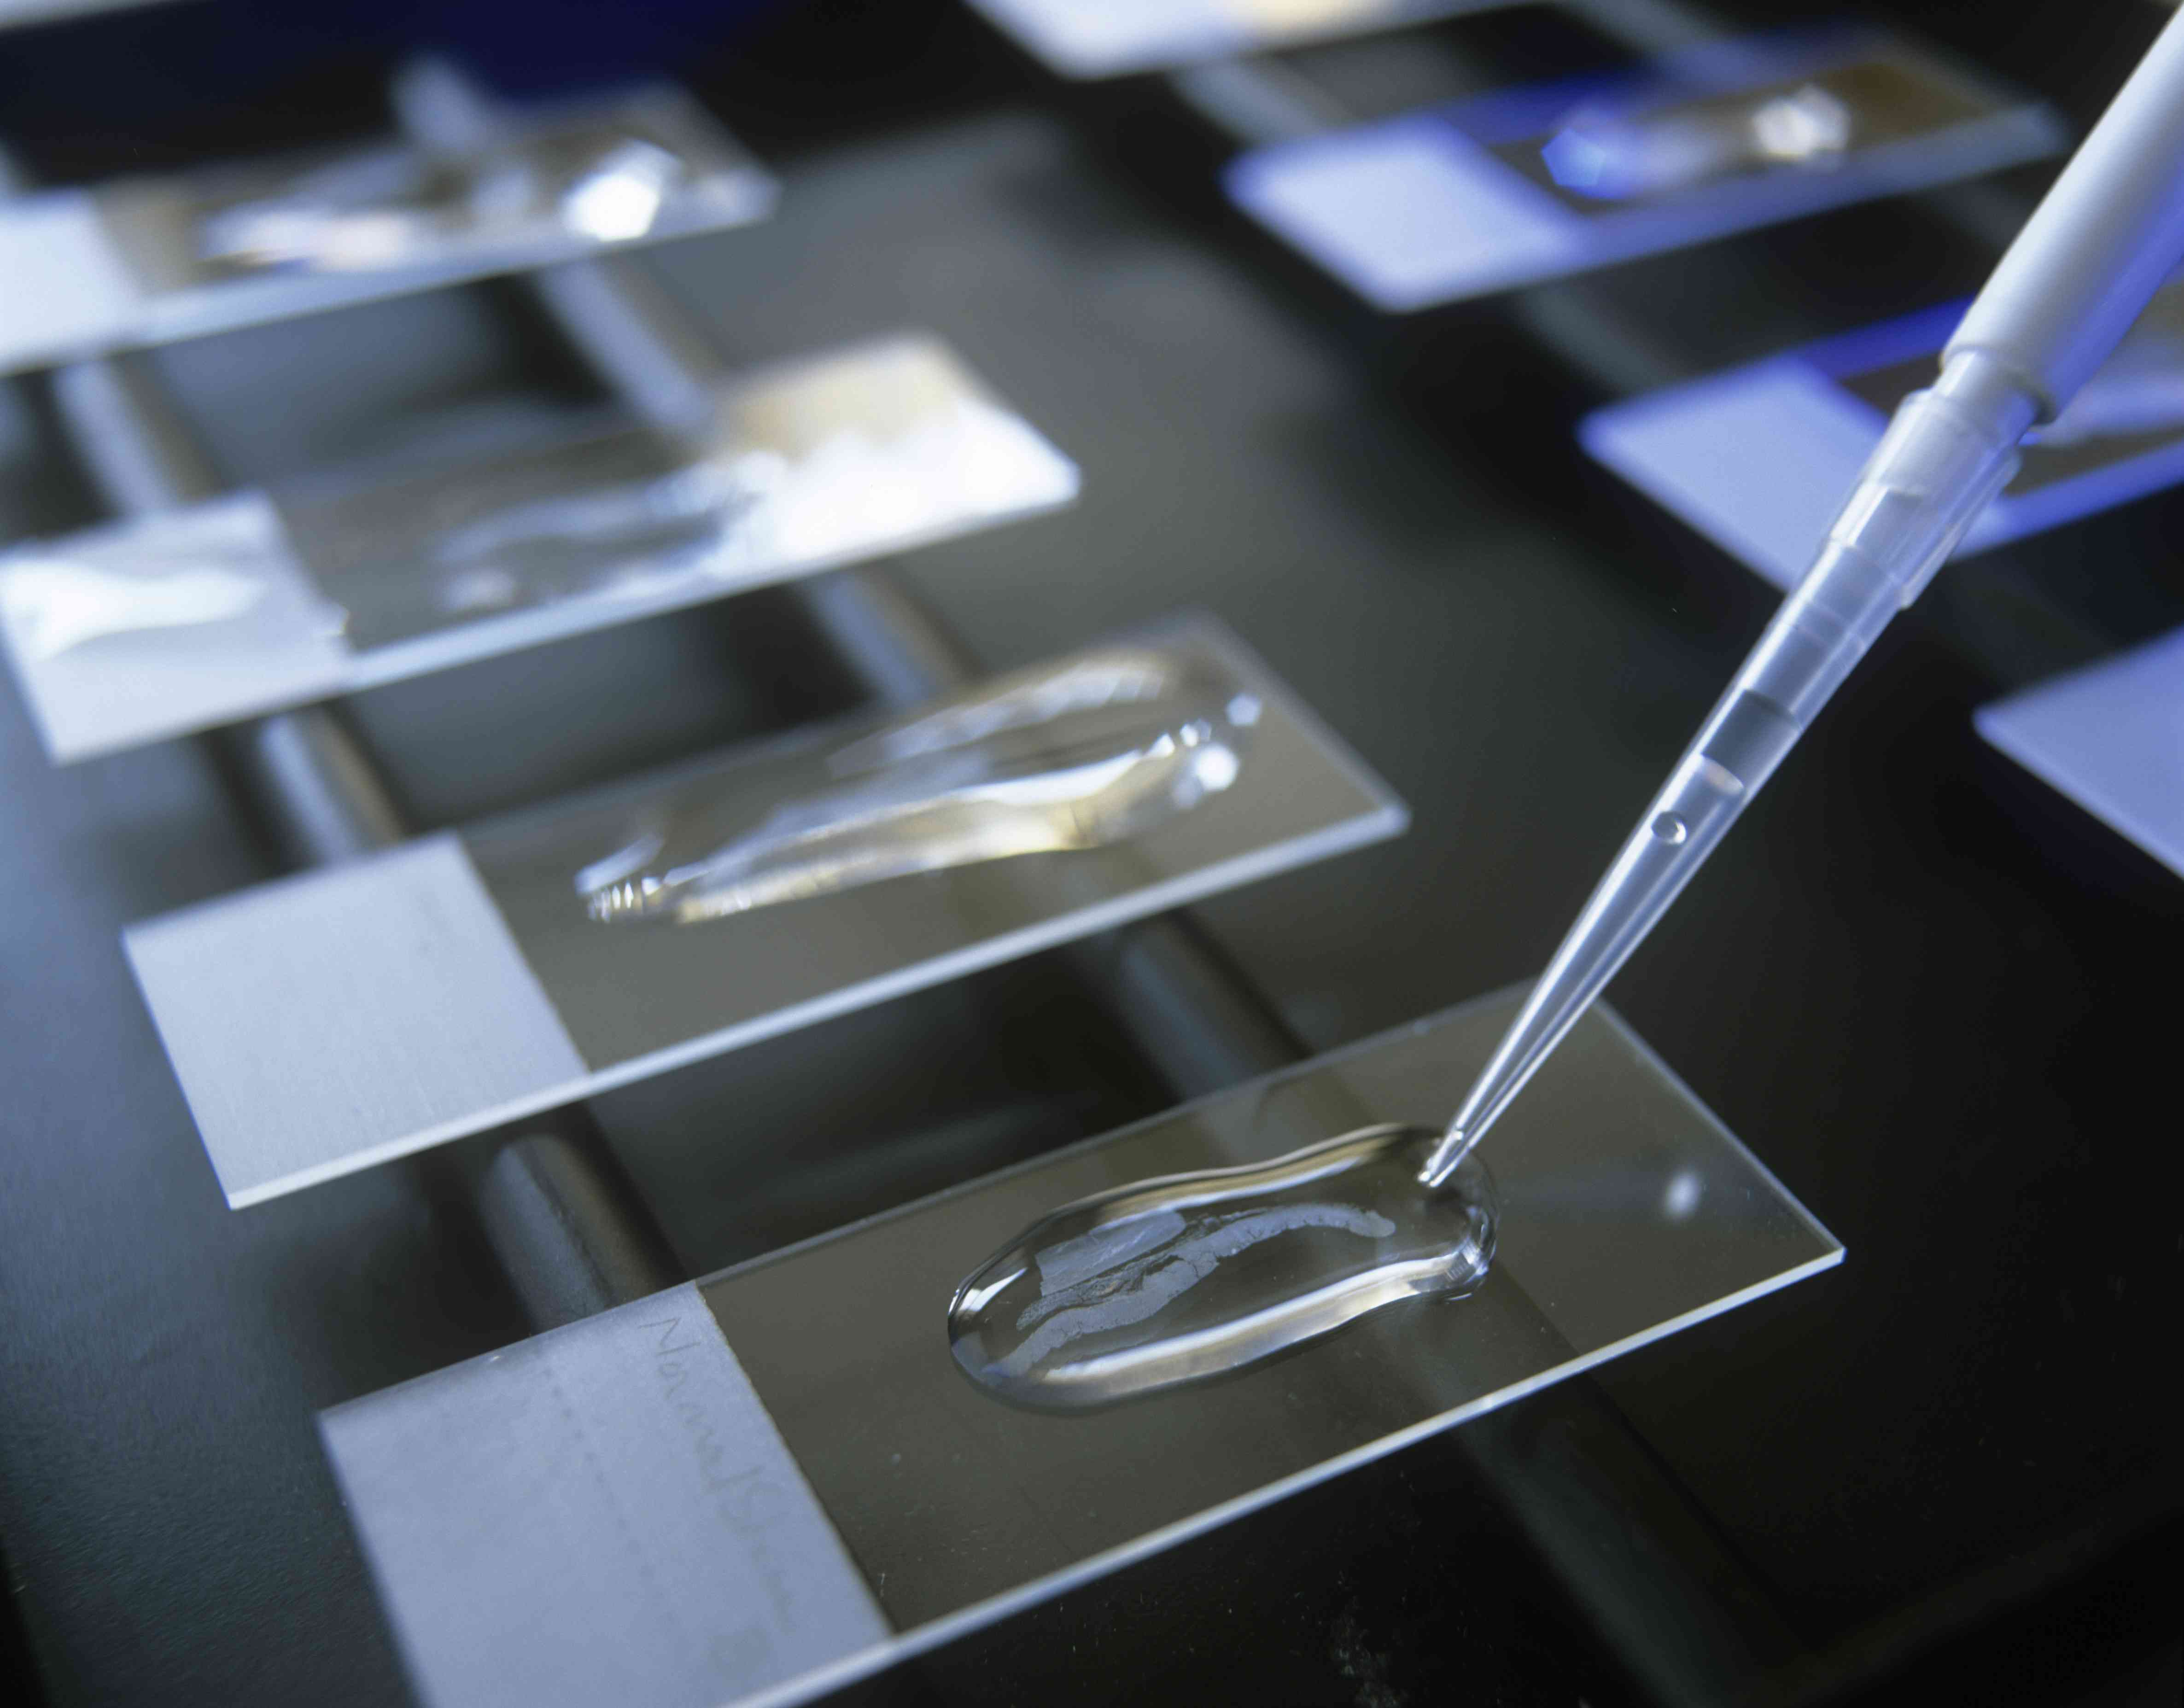 Cancer research lab slides close-up